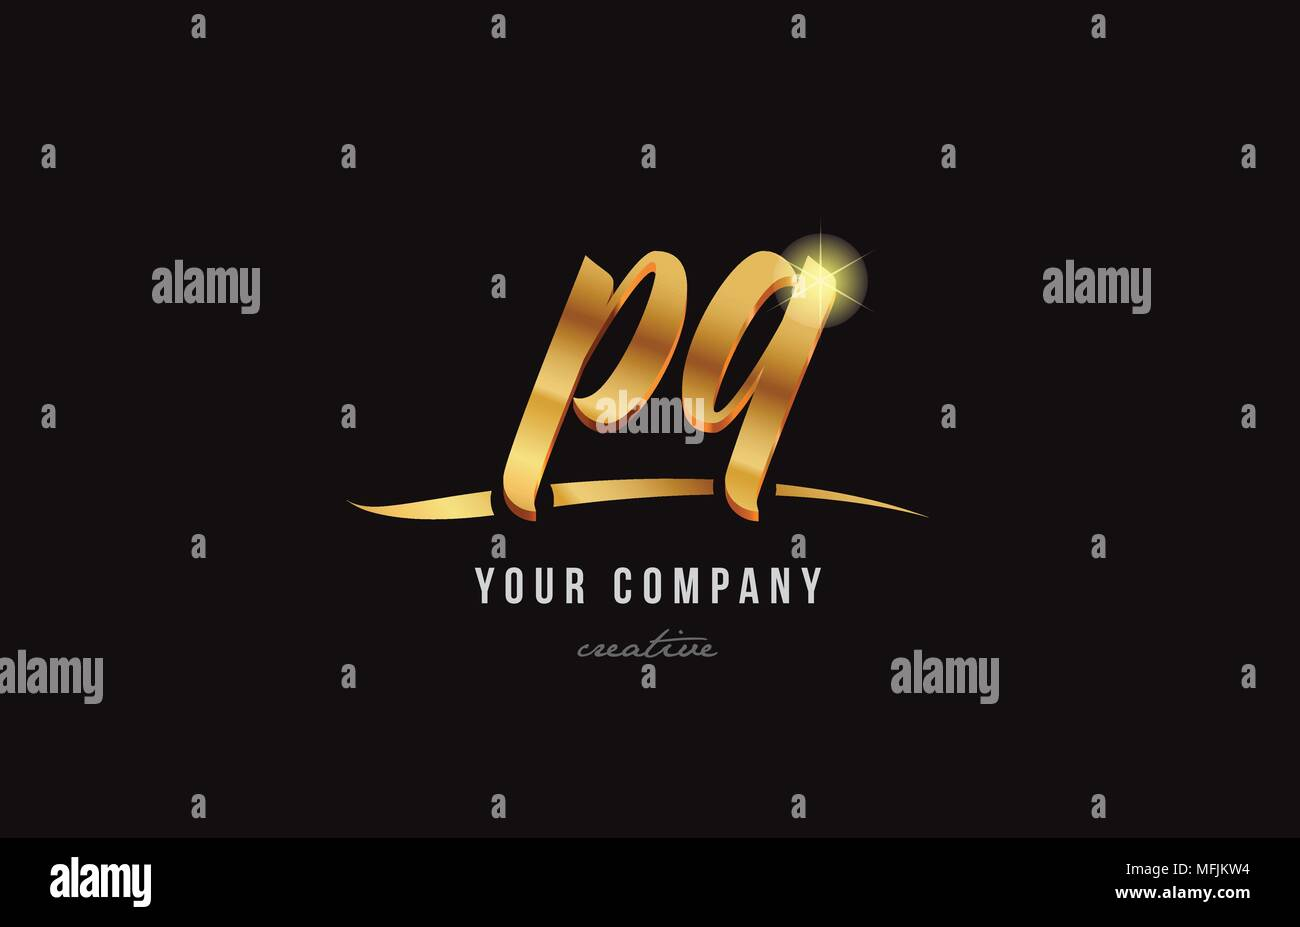 gold golden alphabet letter pq p q logo combination design suitable for a company or business - Stock Image